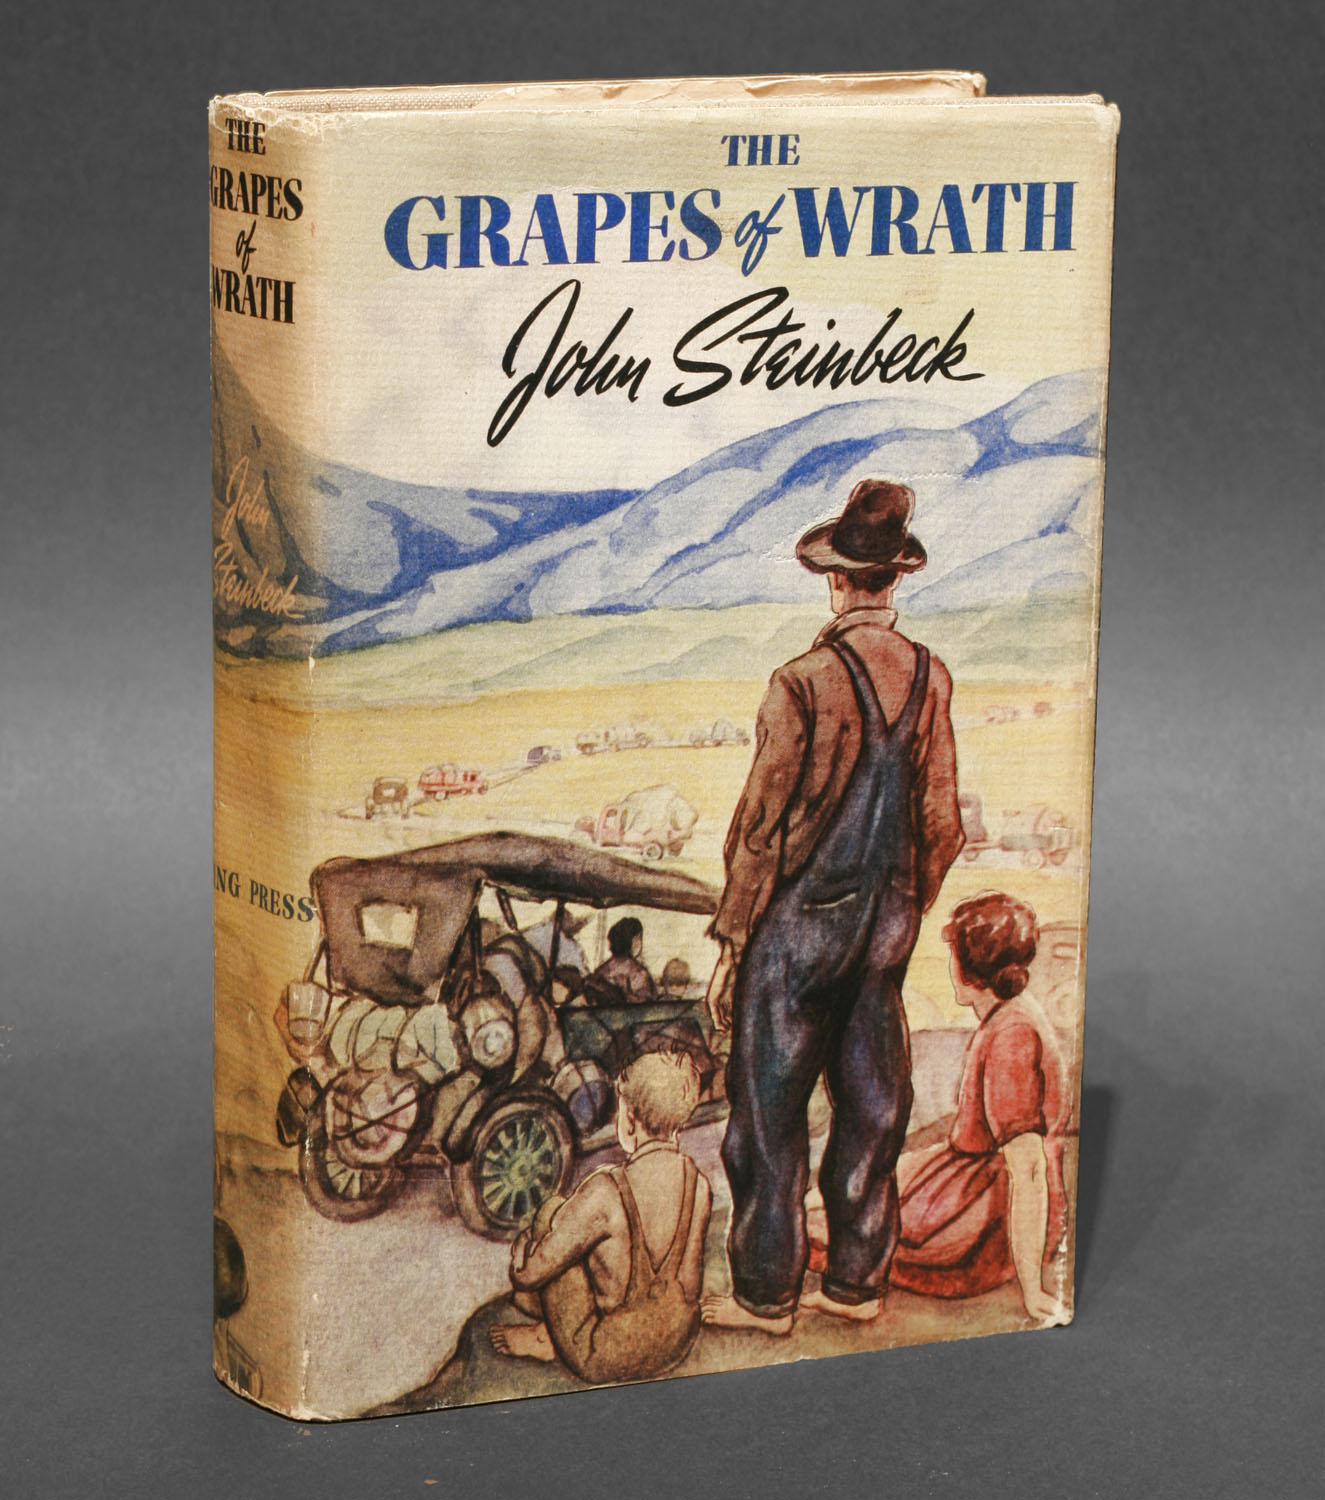 The grapes of wrath essay